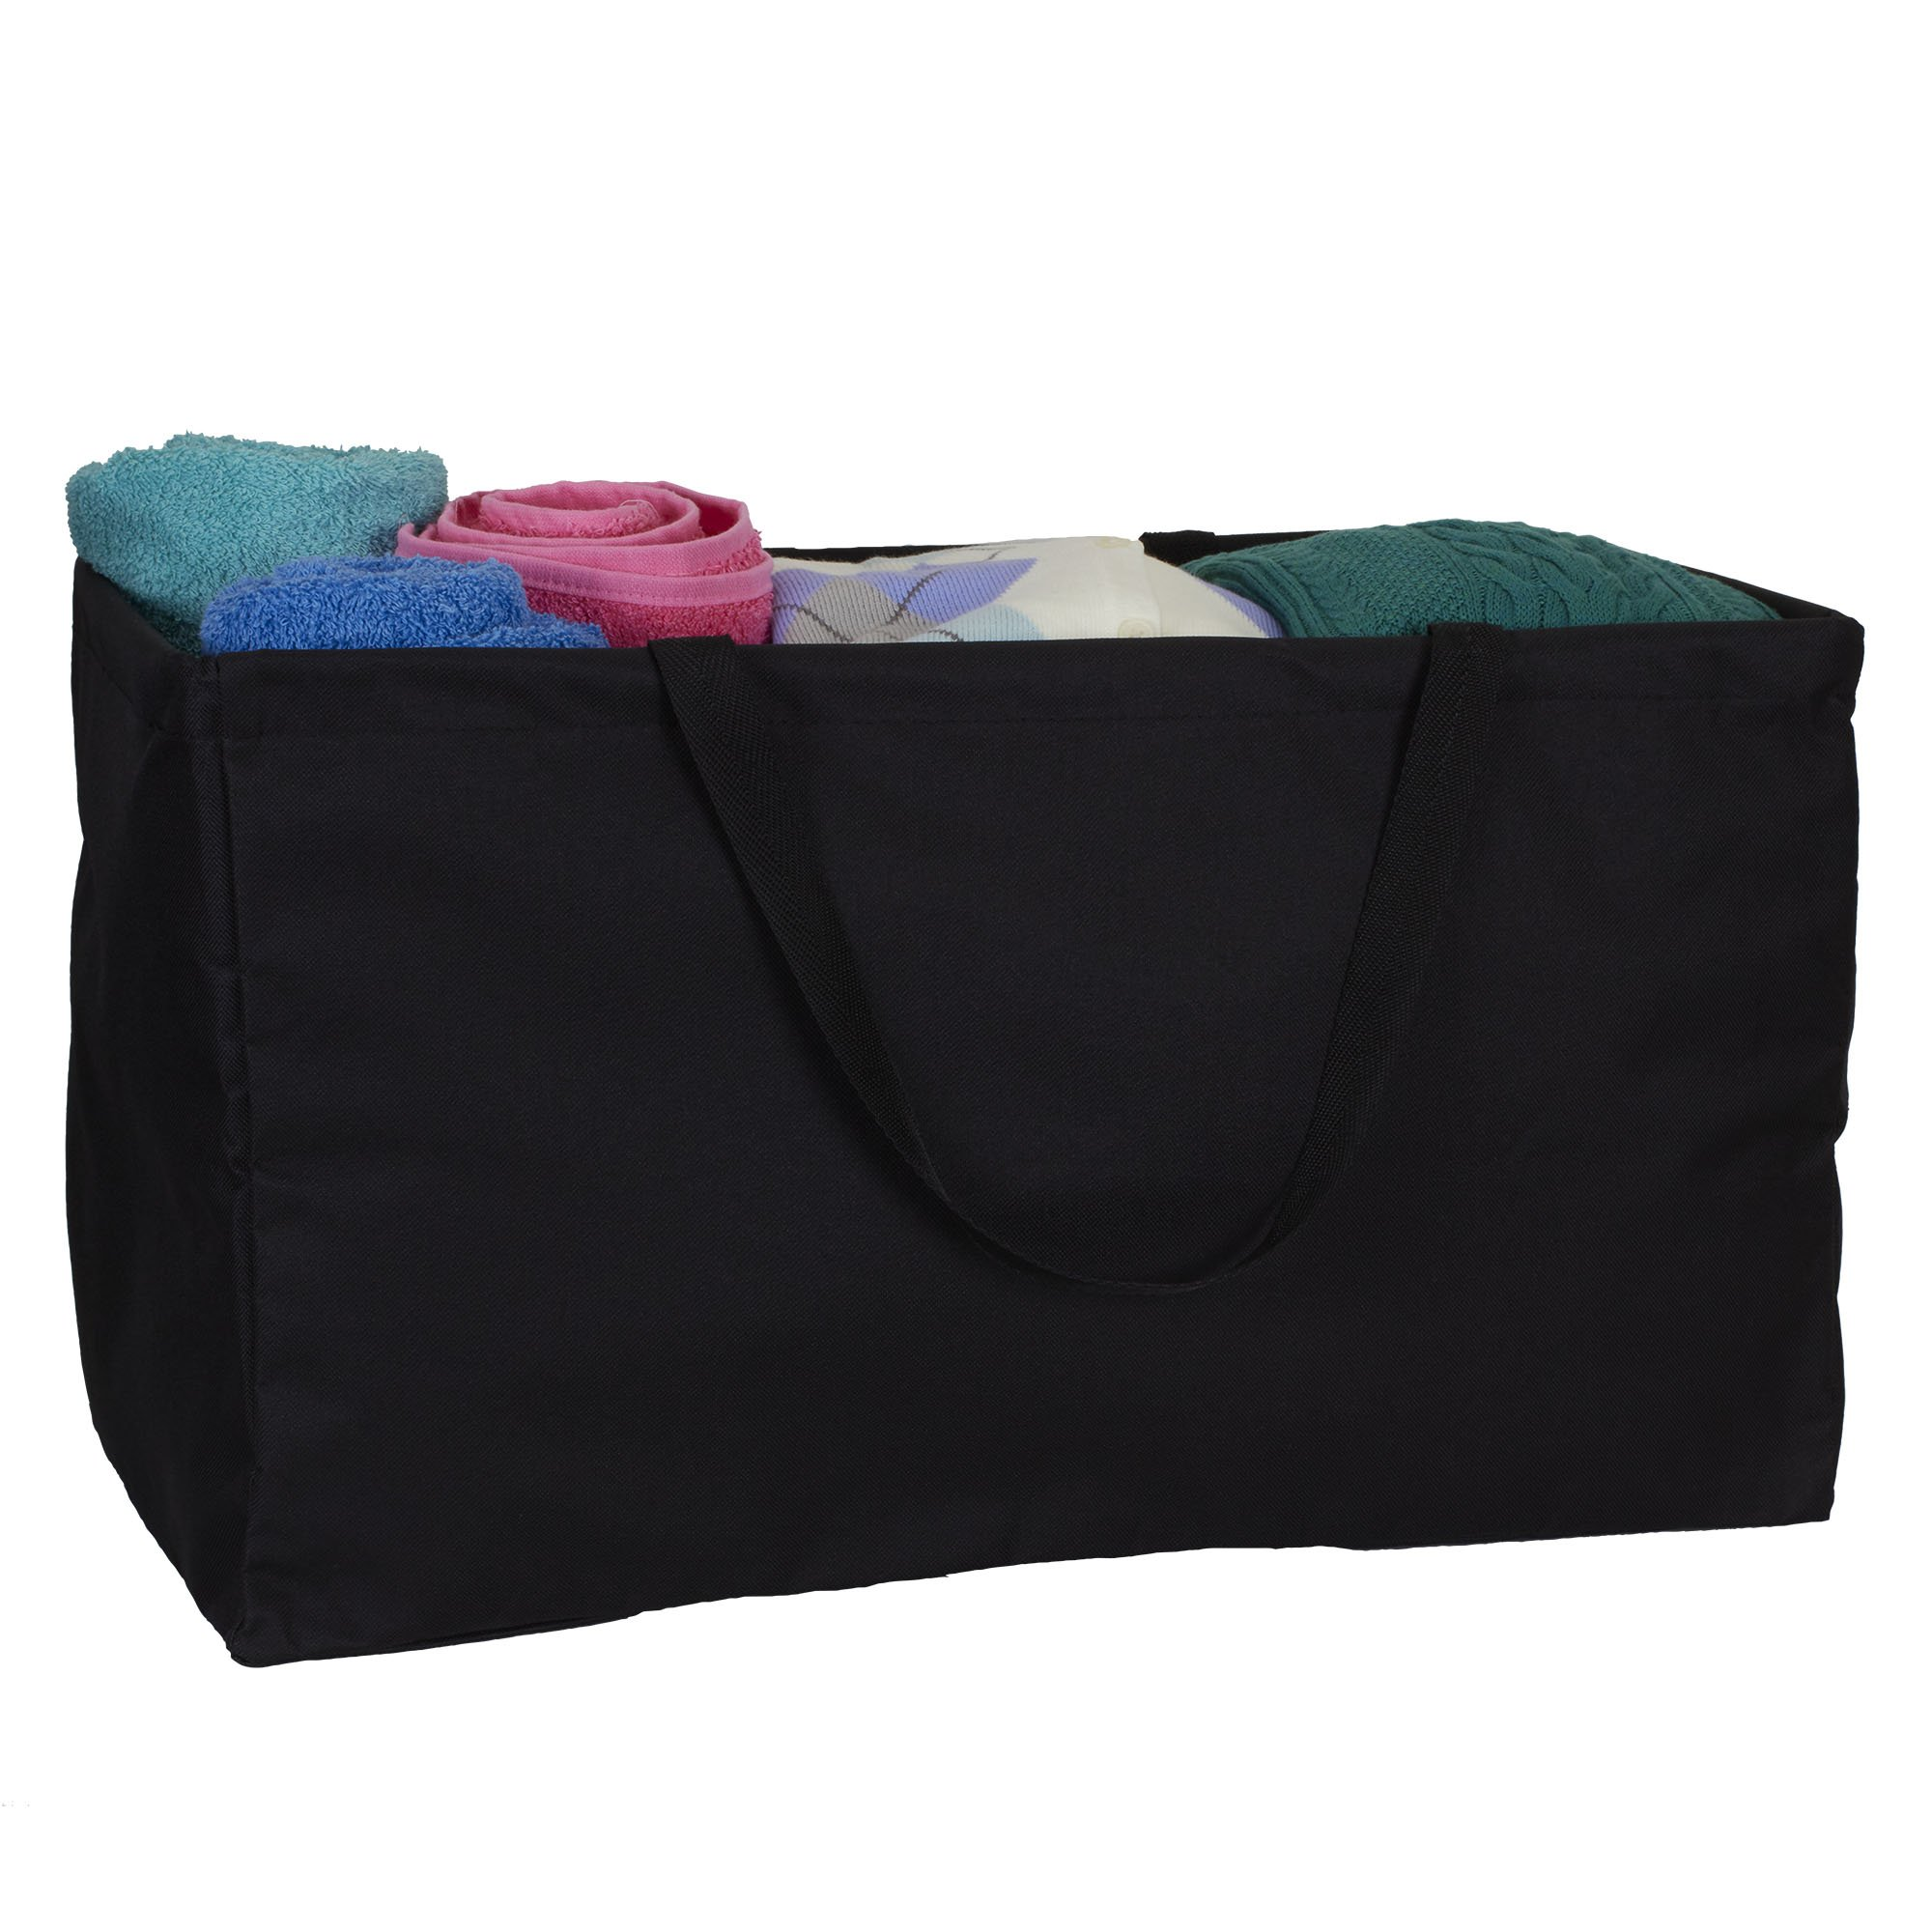 Household Essentials 2212-1 Krush Canvas Utility Tote | Reusable Grocery Shopping Bag | Laundry Carry Bag | Black by Household Essentials (Image #2)